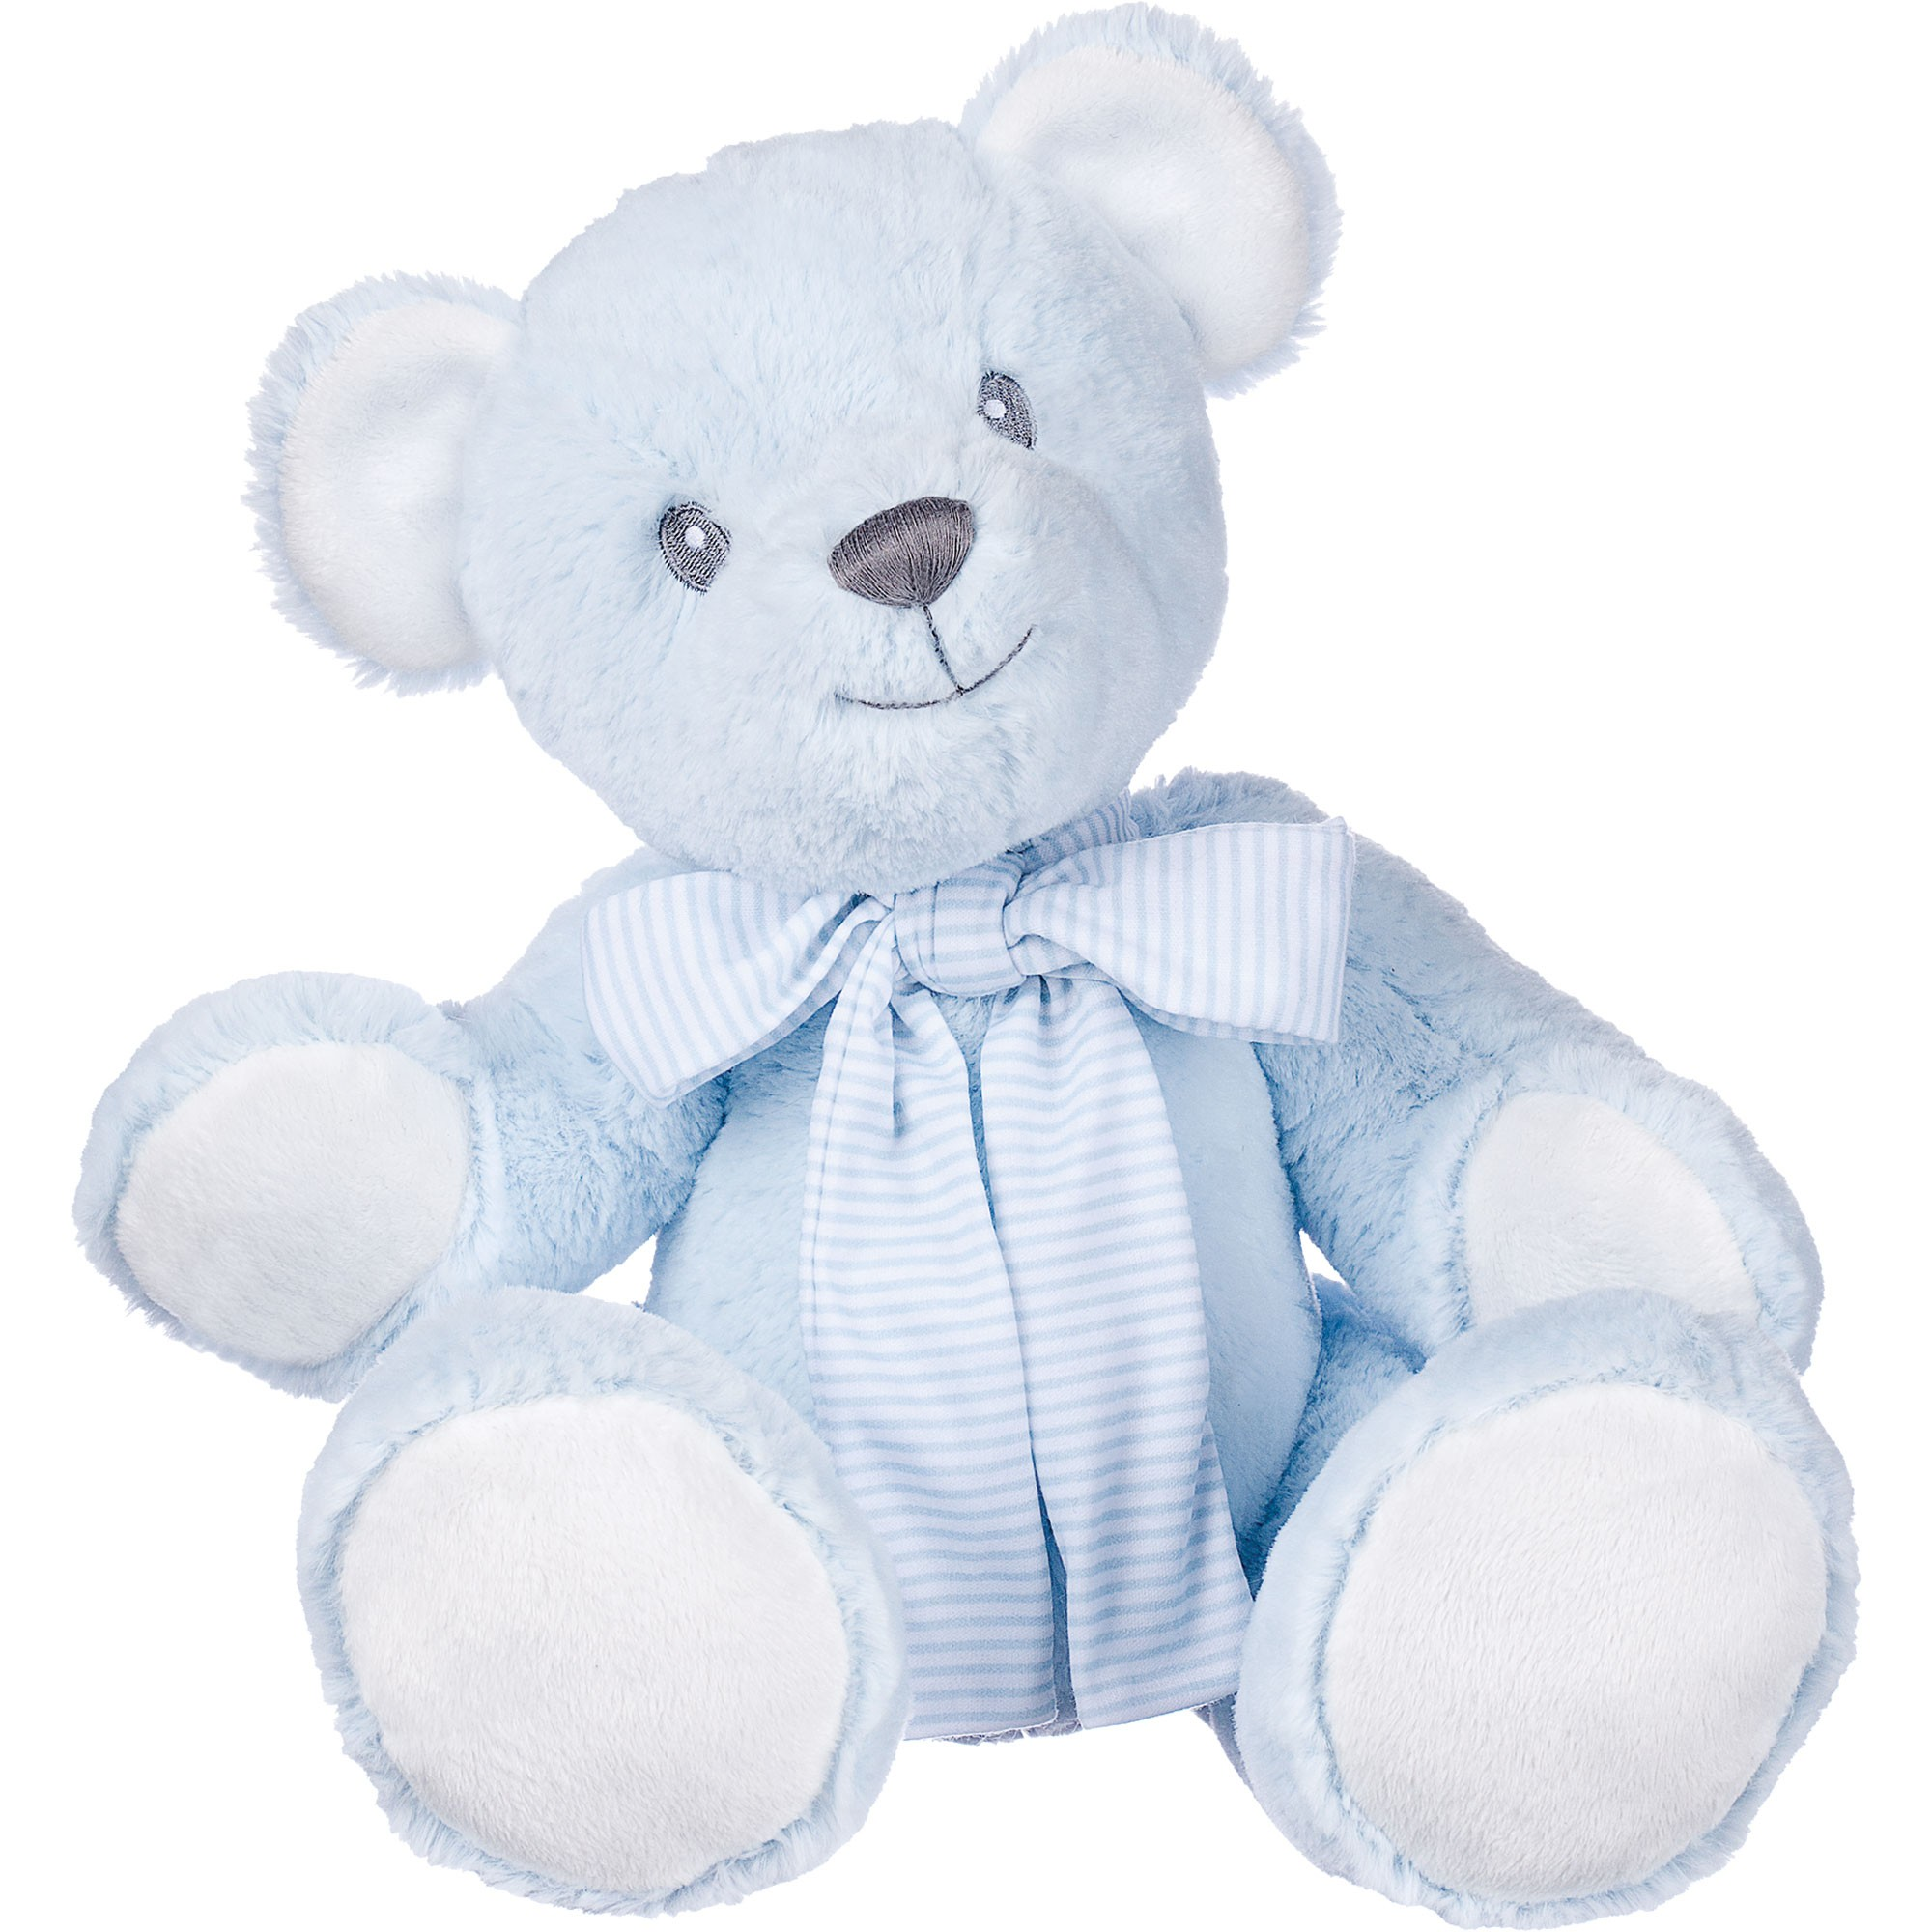 Hug-a-Boo Blue Large Teddy Bear